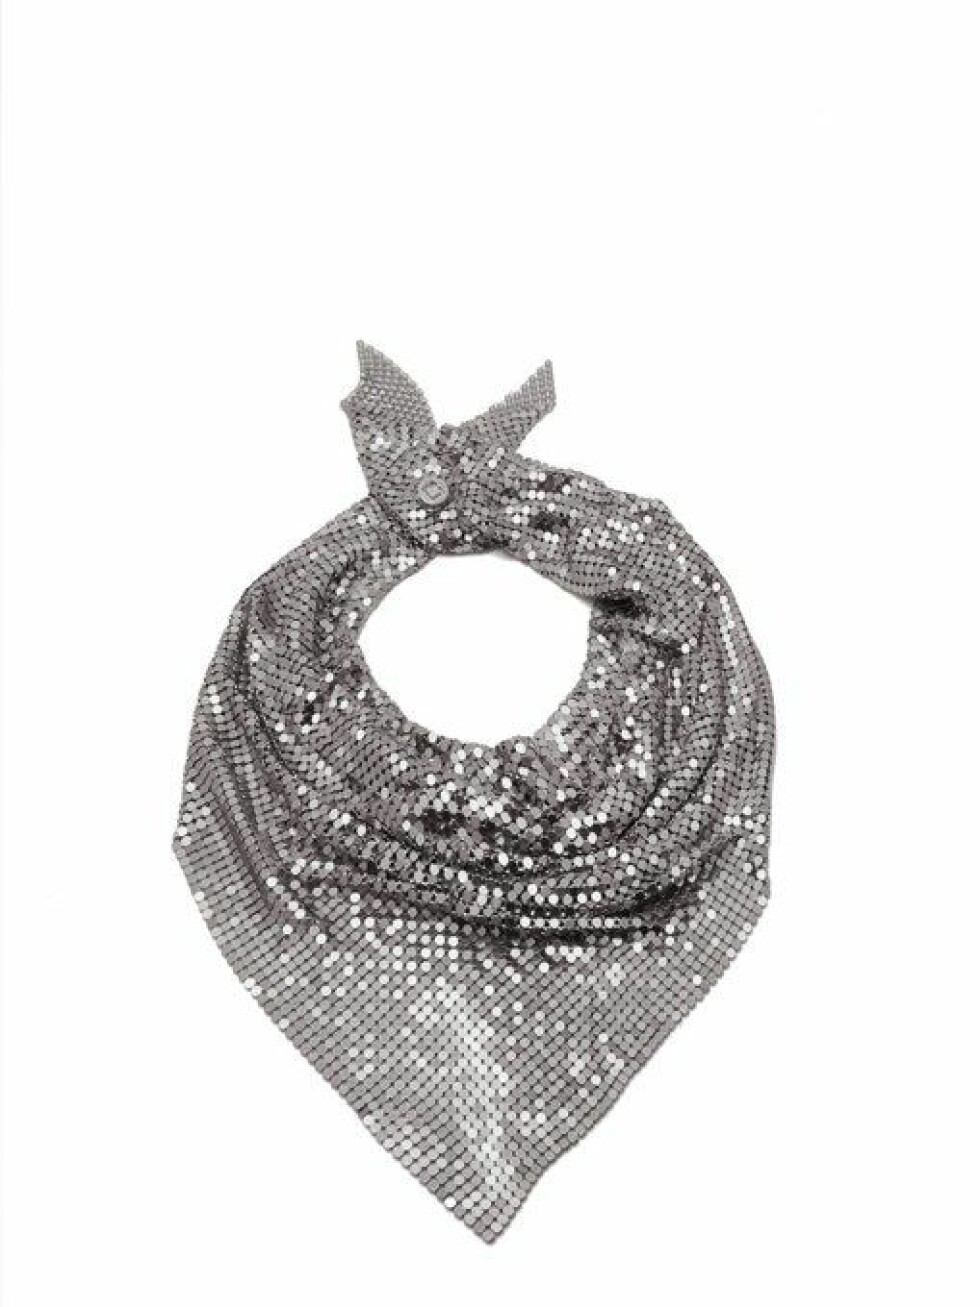 Skjerf fra Paco Rabanna |2755,-| https://www.matchesfashion.com/intl/products/Paco-Rabanne-Chainmail-mesh-scarf-1219282